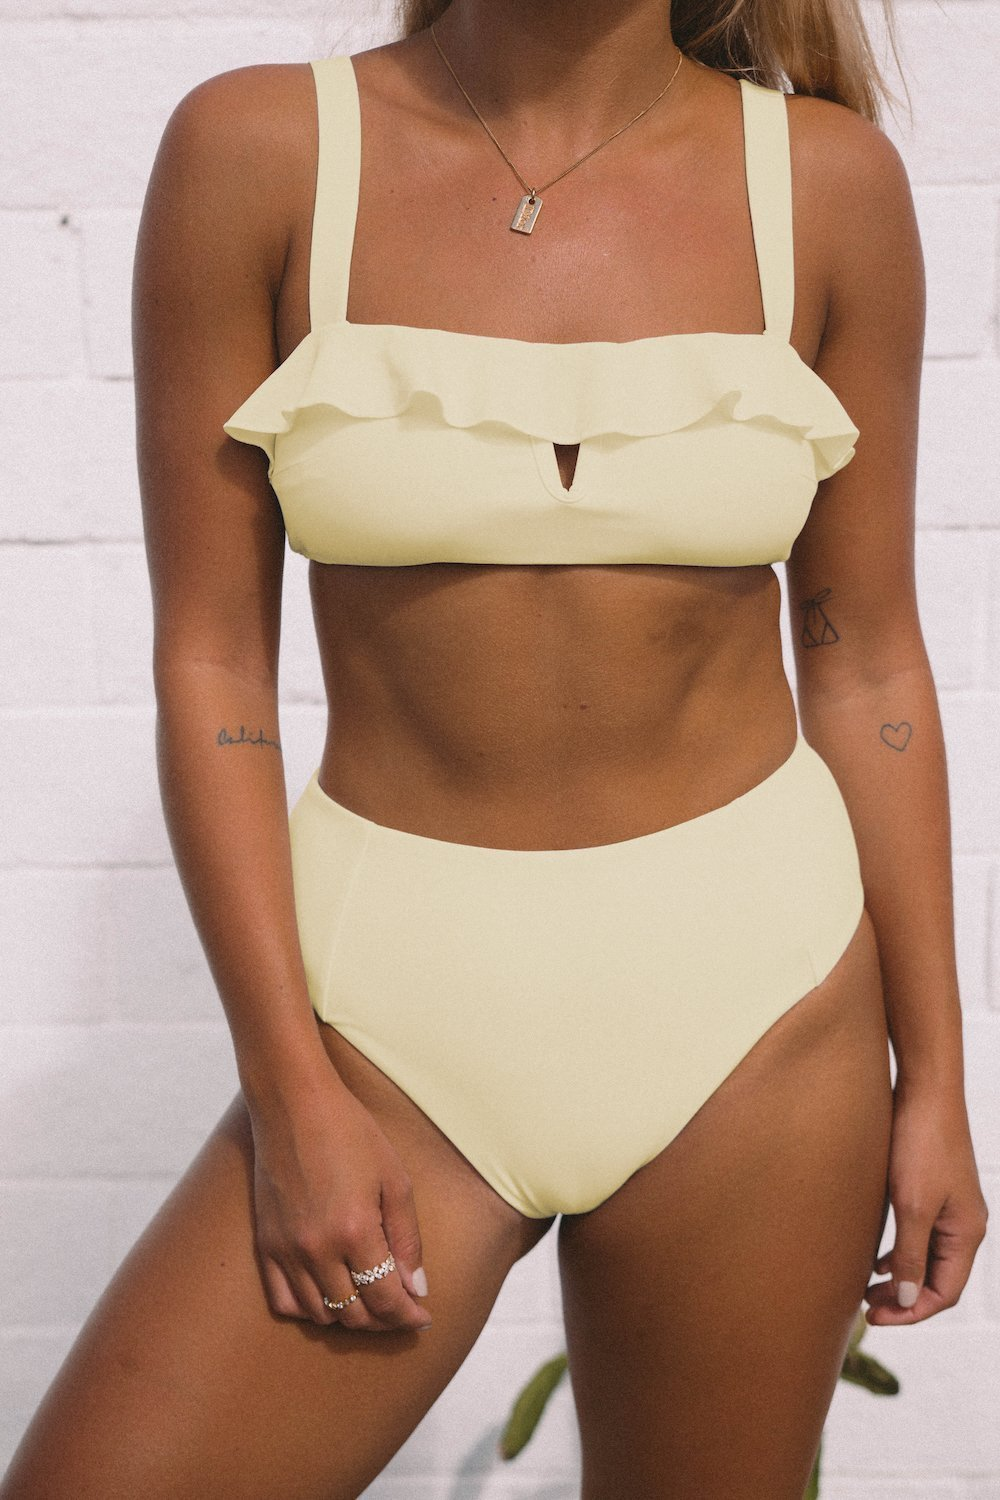 Ete Swimwear Ete X Matilda - Malibu Top (Sunset) - Nomads Cove